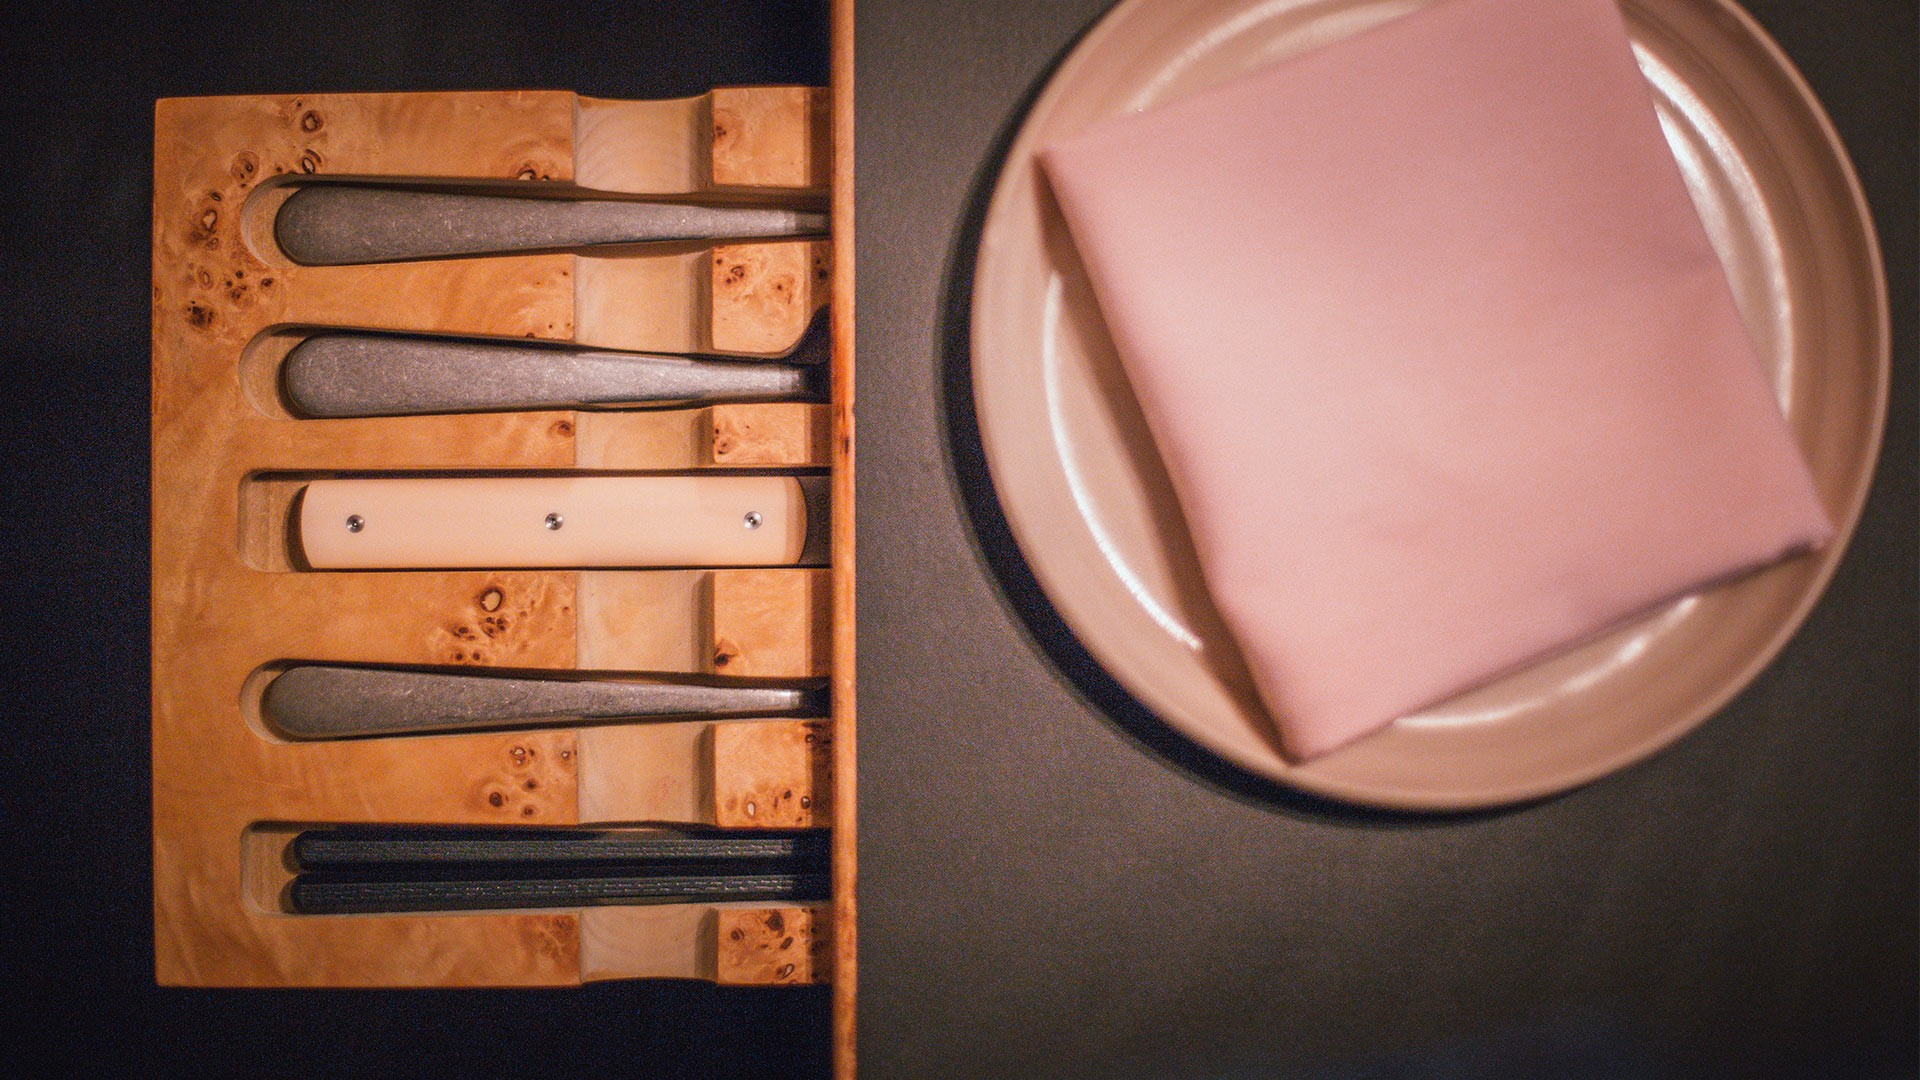 The cutlery drawers at The Laughing Heart